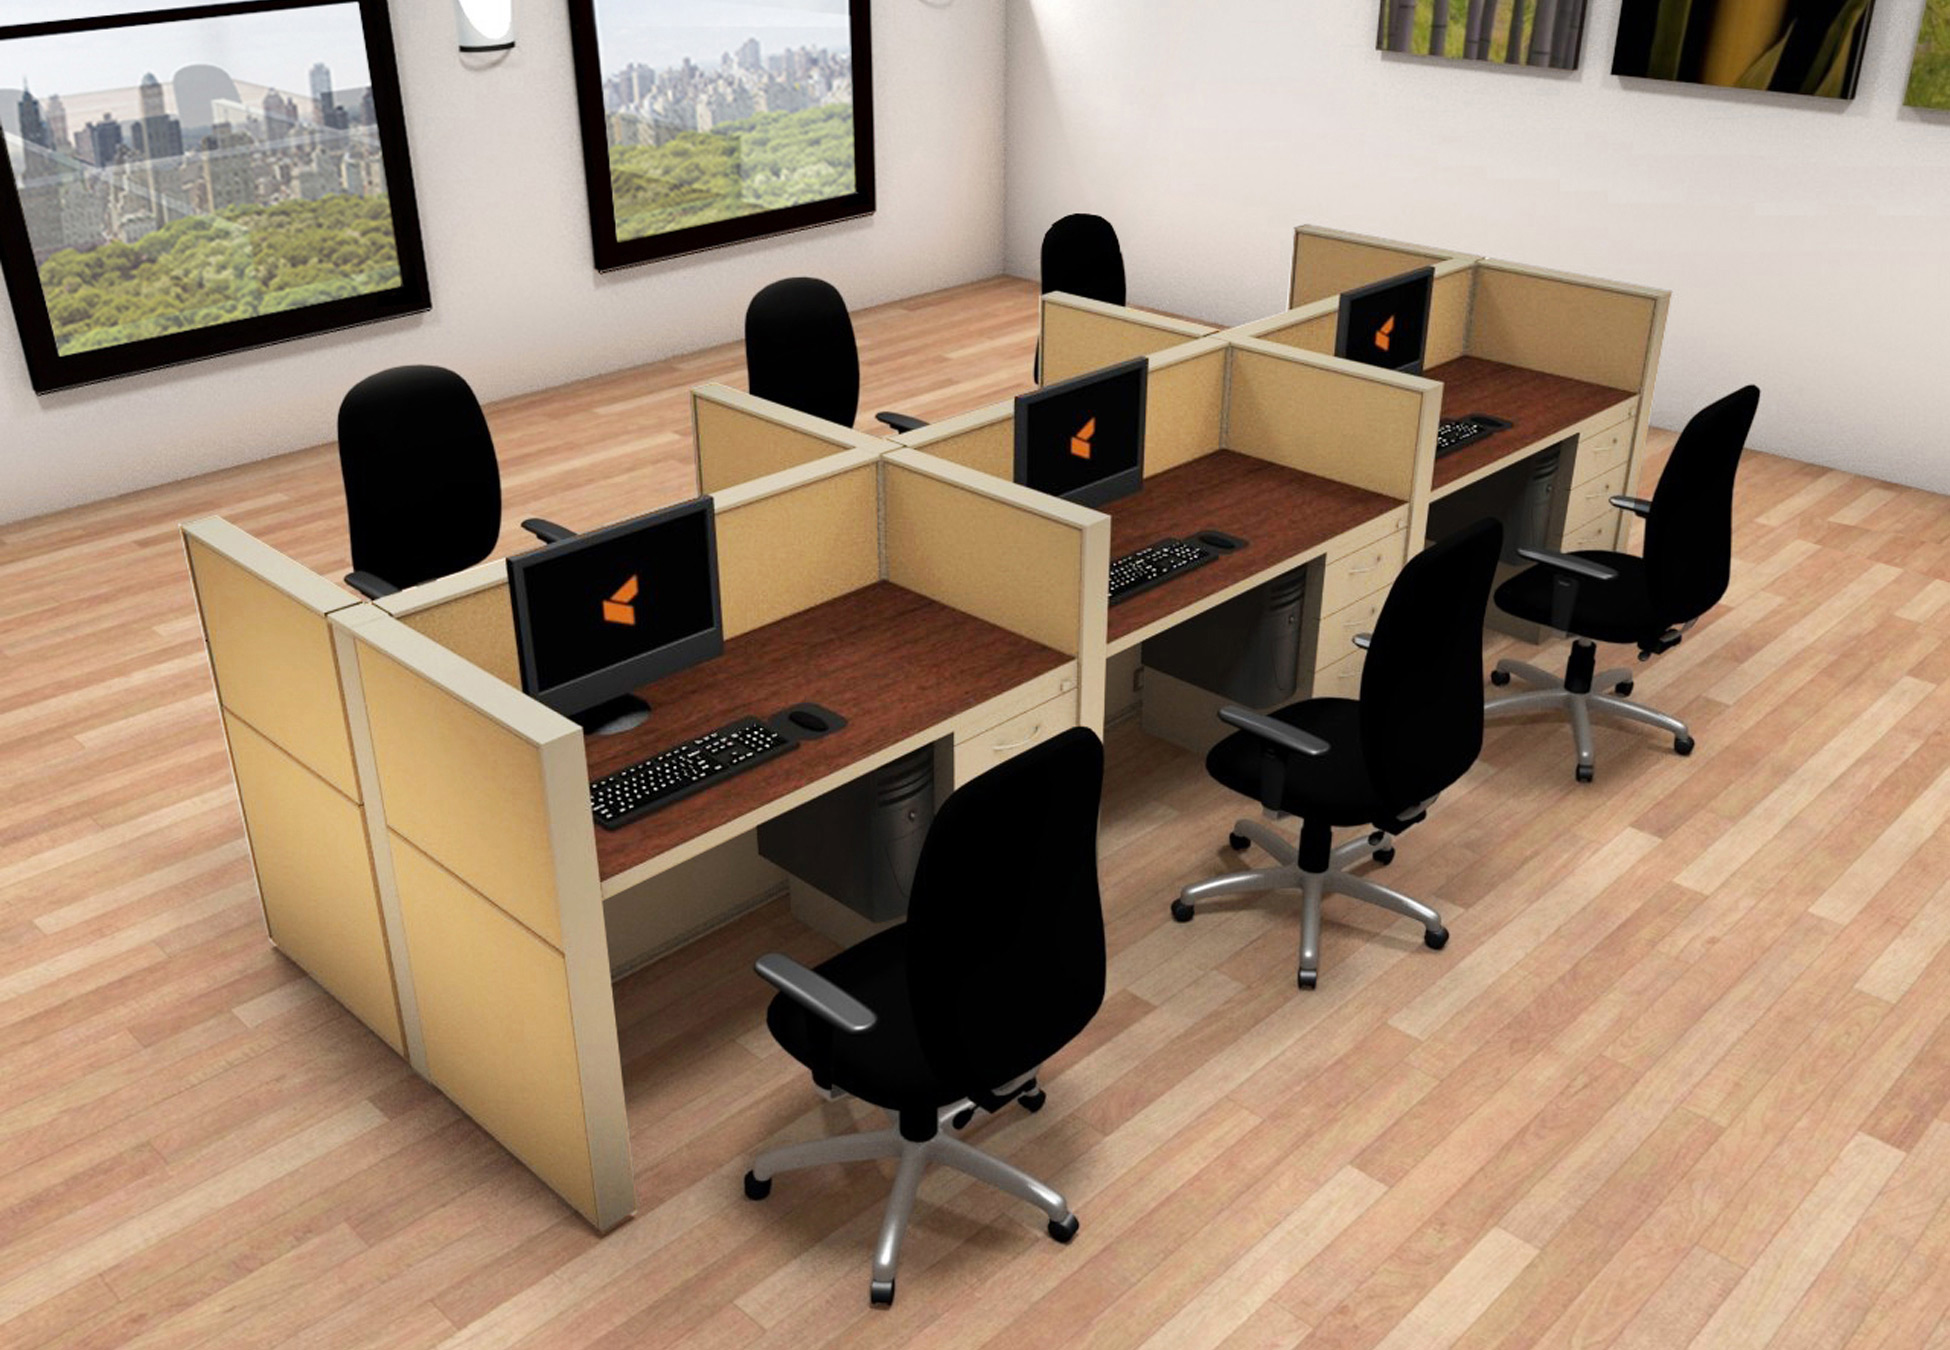 2x4 Cubicle Workstations from AIS - 6 Pack Cluster